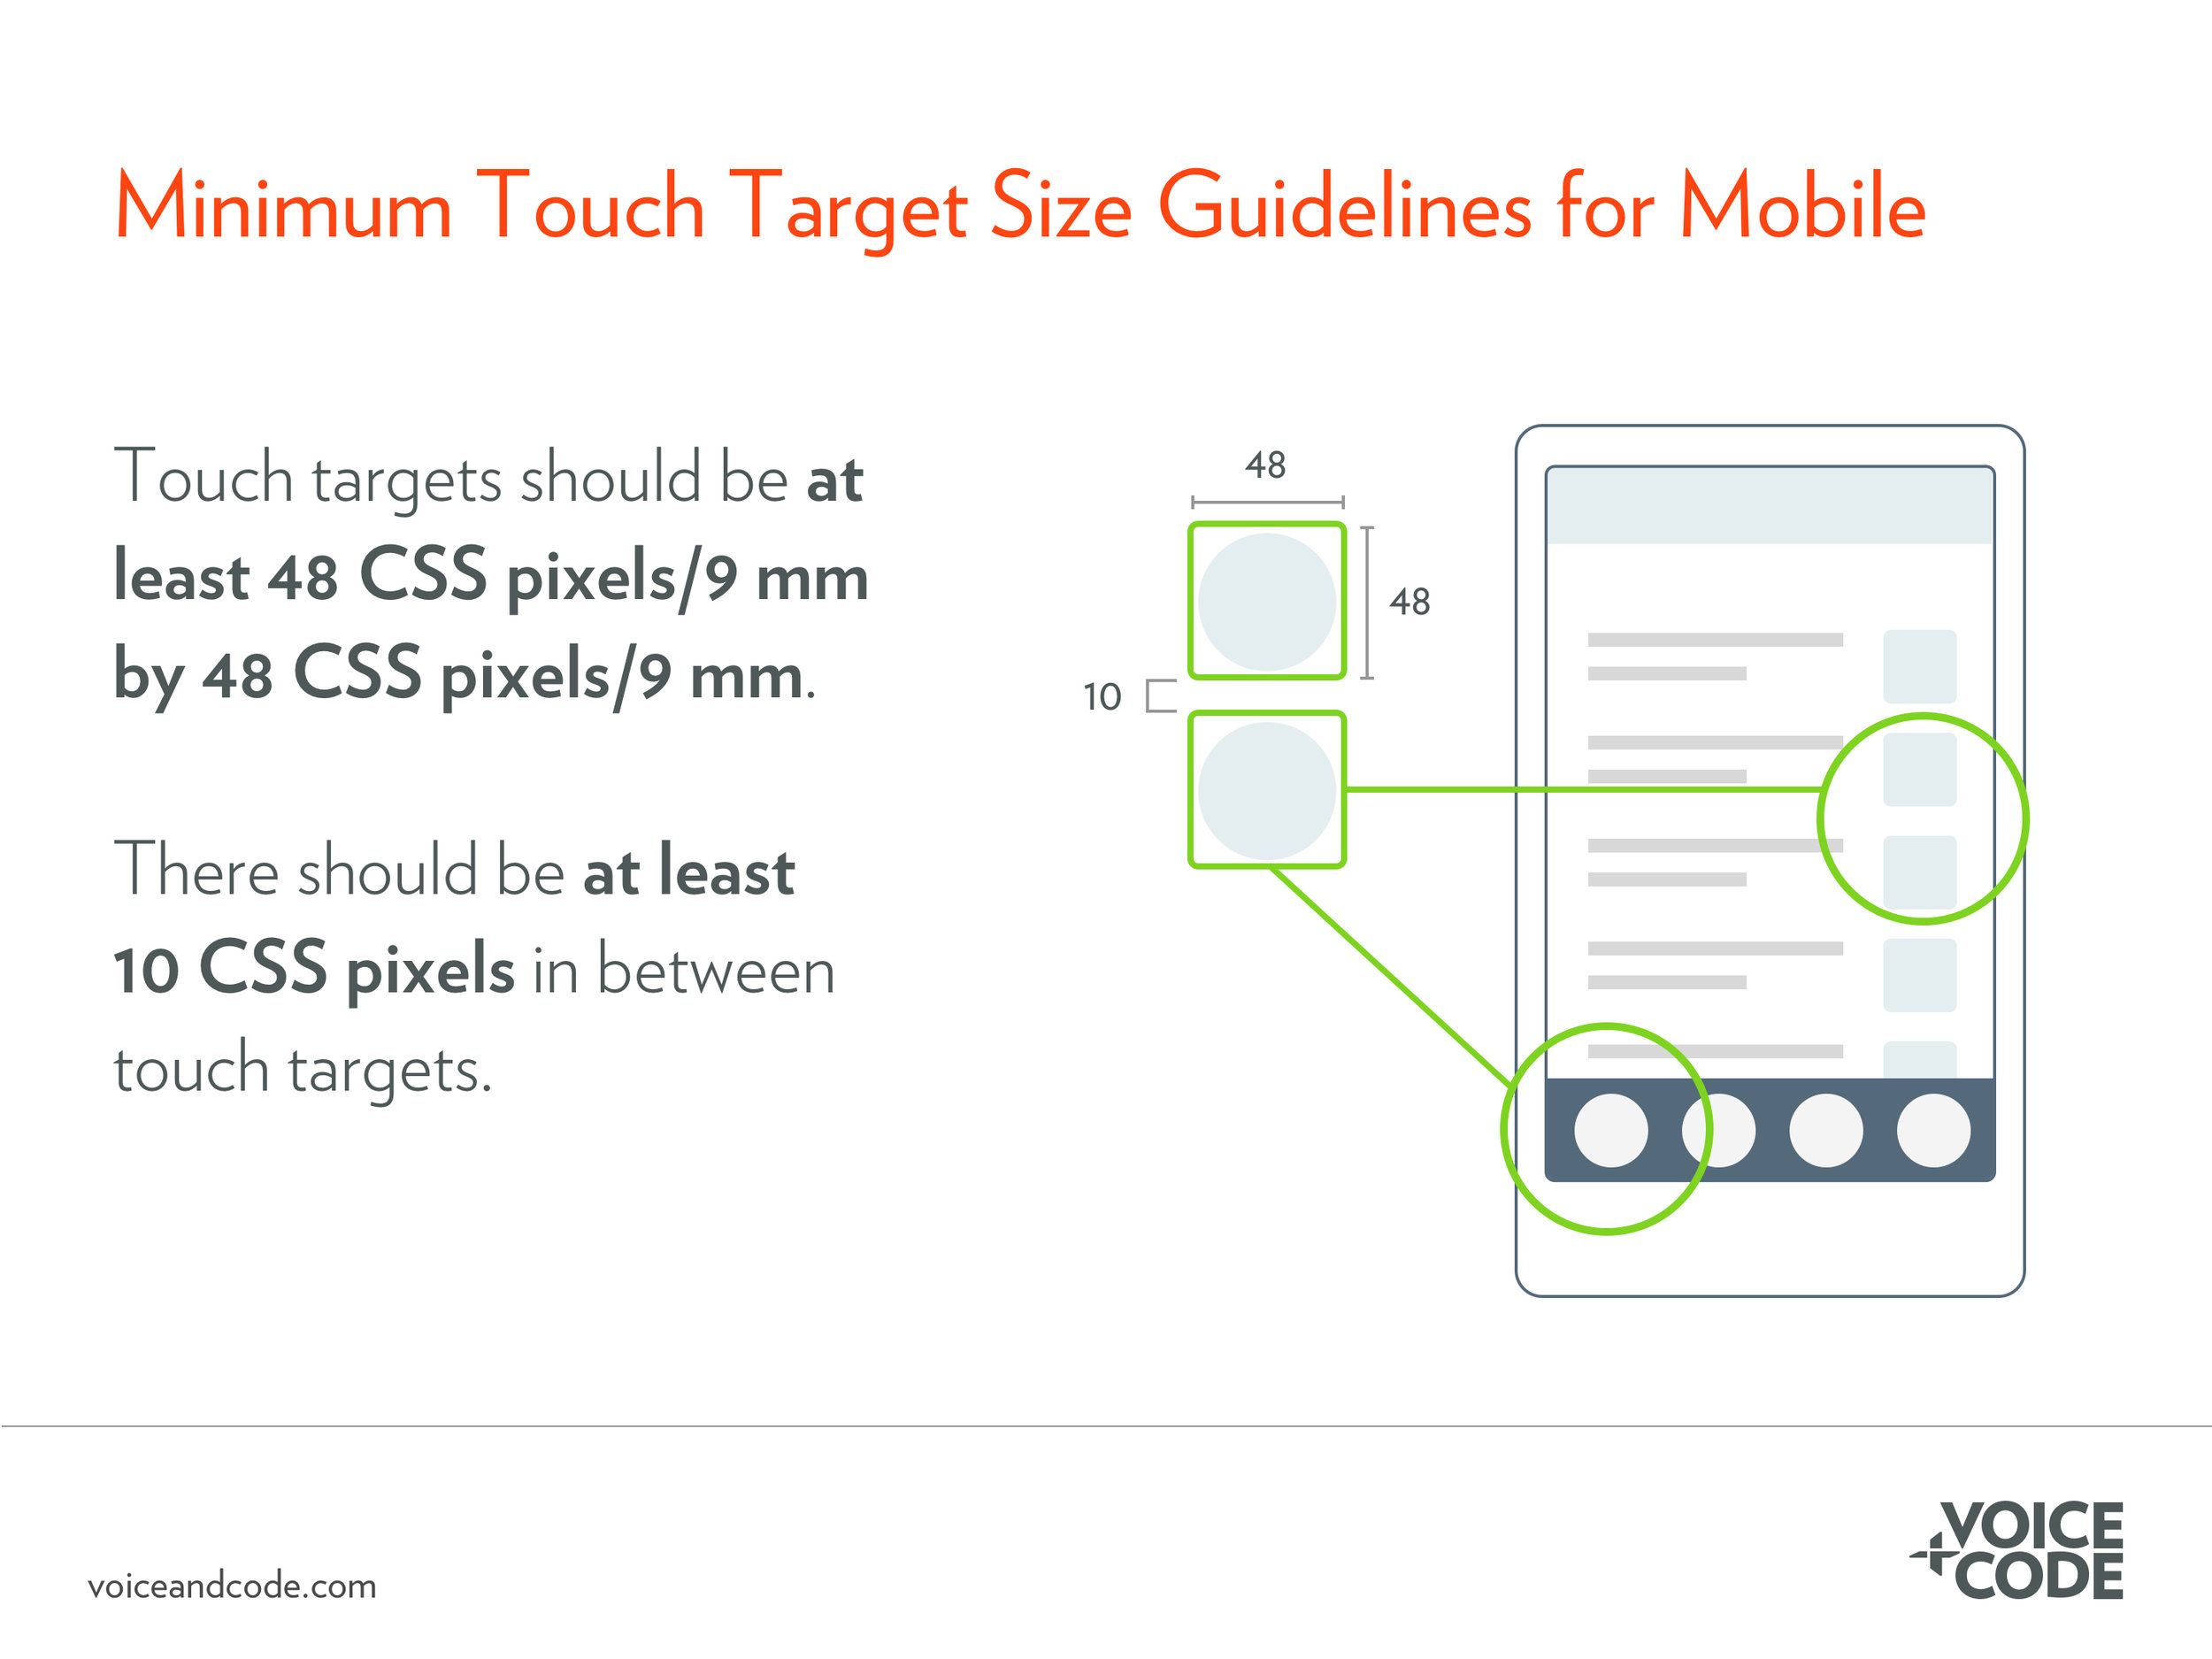 On mobile, tappable elements should be 48 by 48 CSS pixels